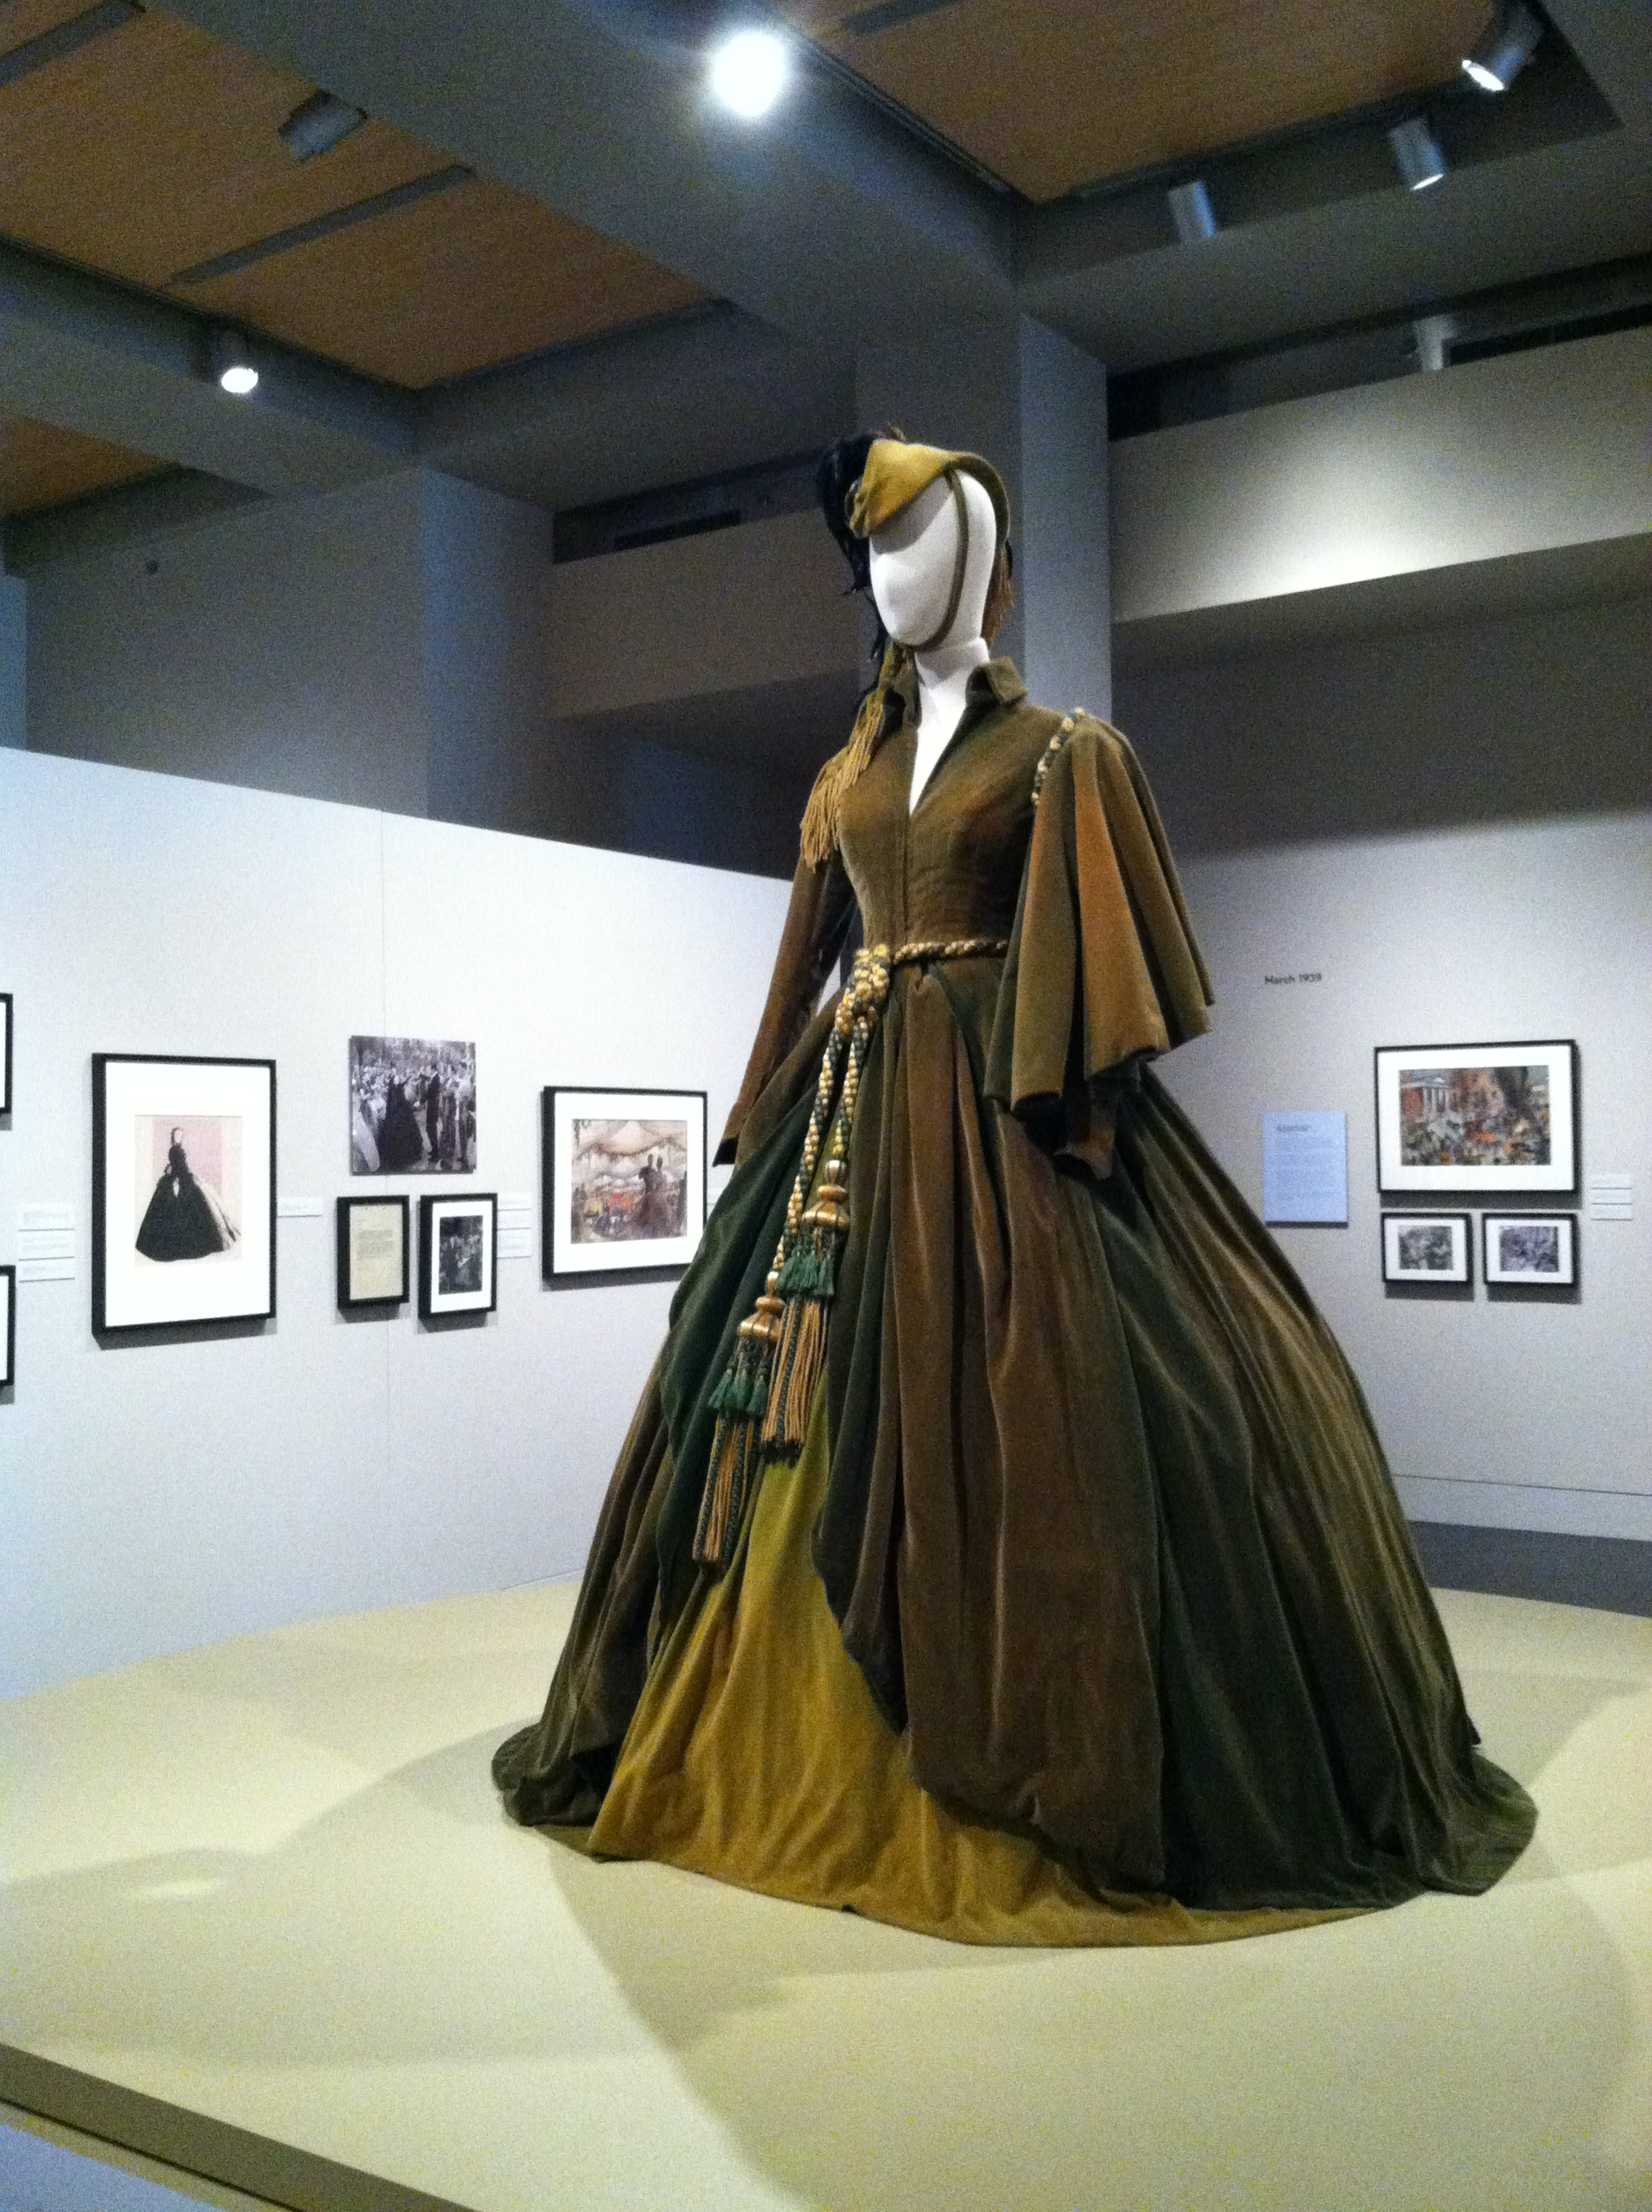 Weekly Adventure Making Of Gone With The Wind Exhibit At